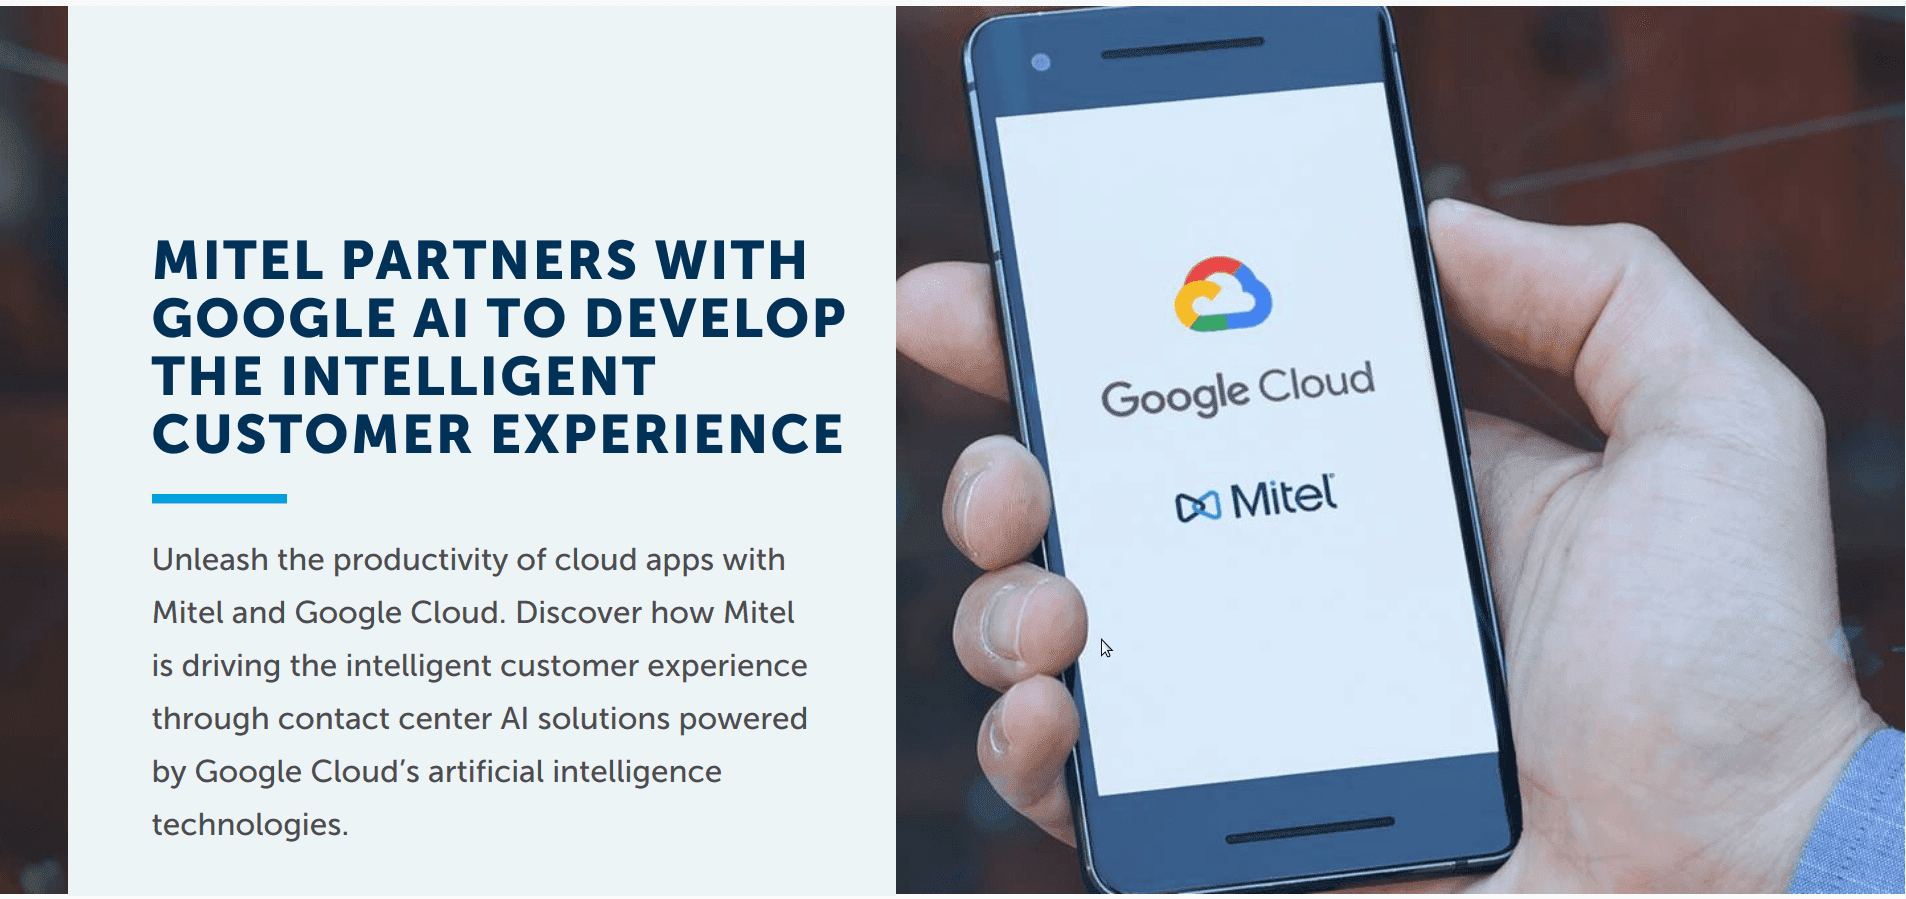 Mitel Expands Virtual Assistant Capabilities with Latest Google Cloud Partnership